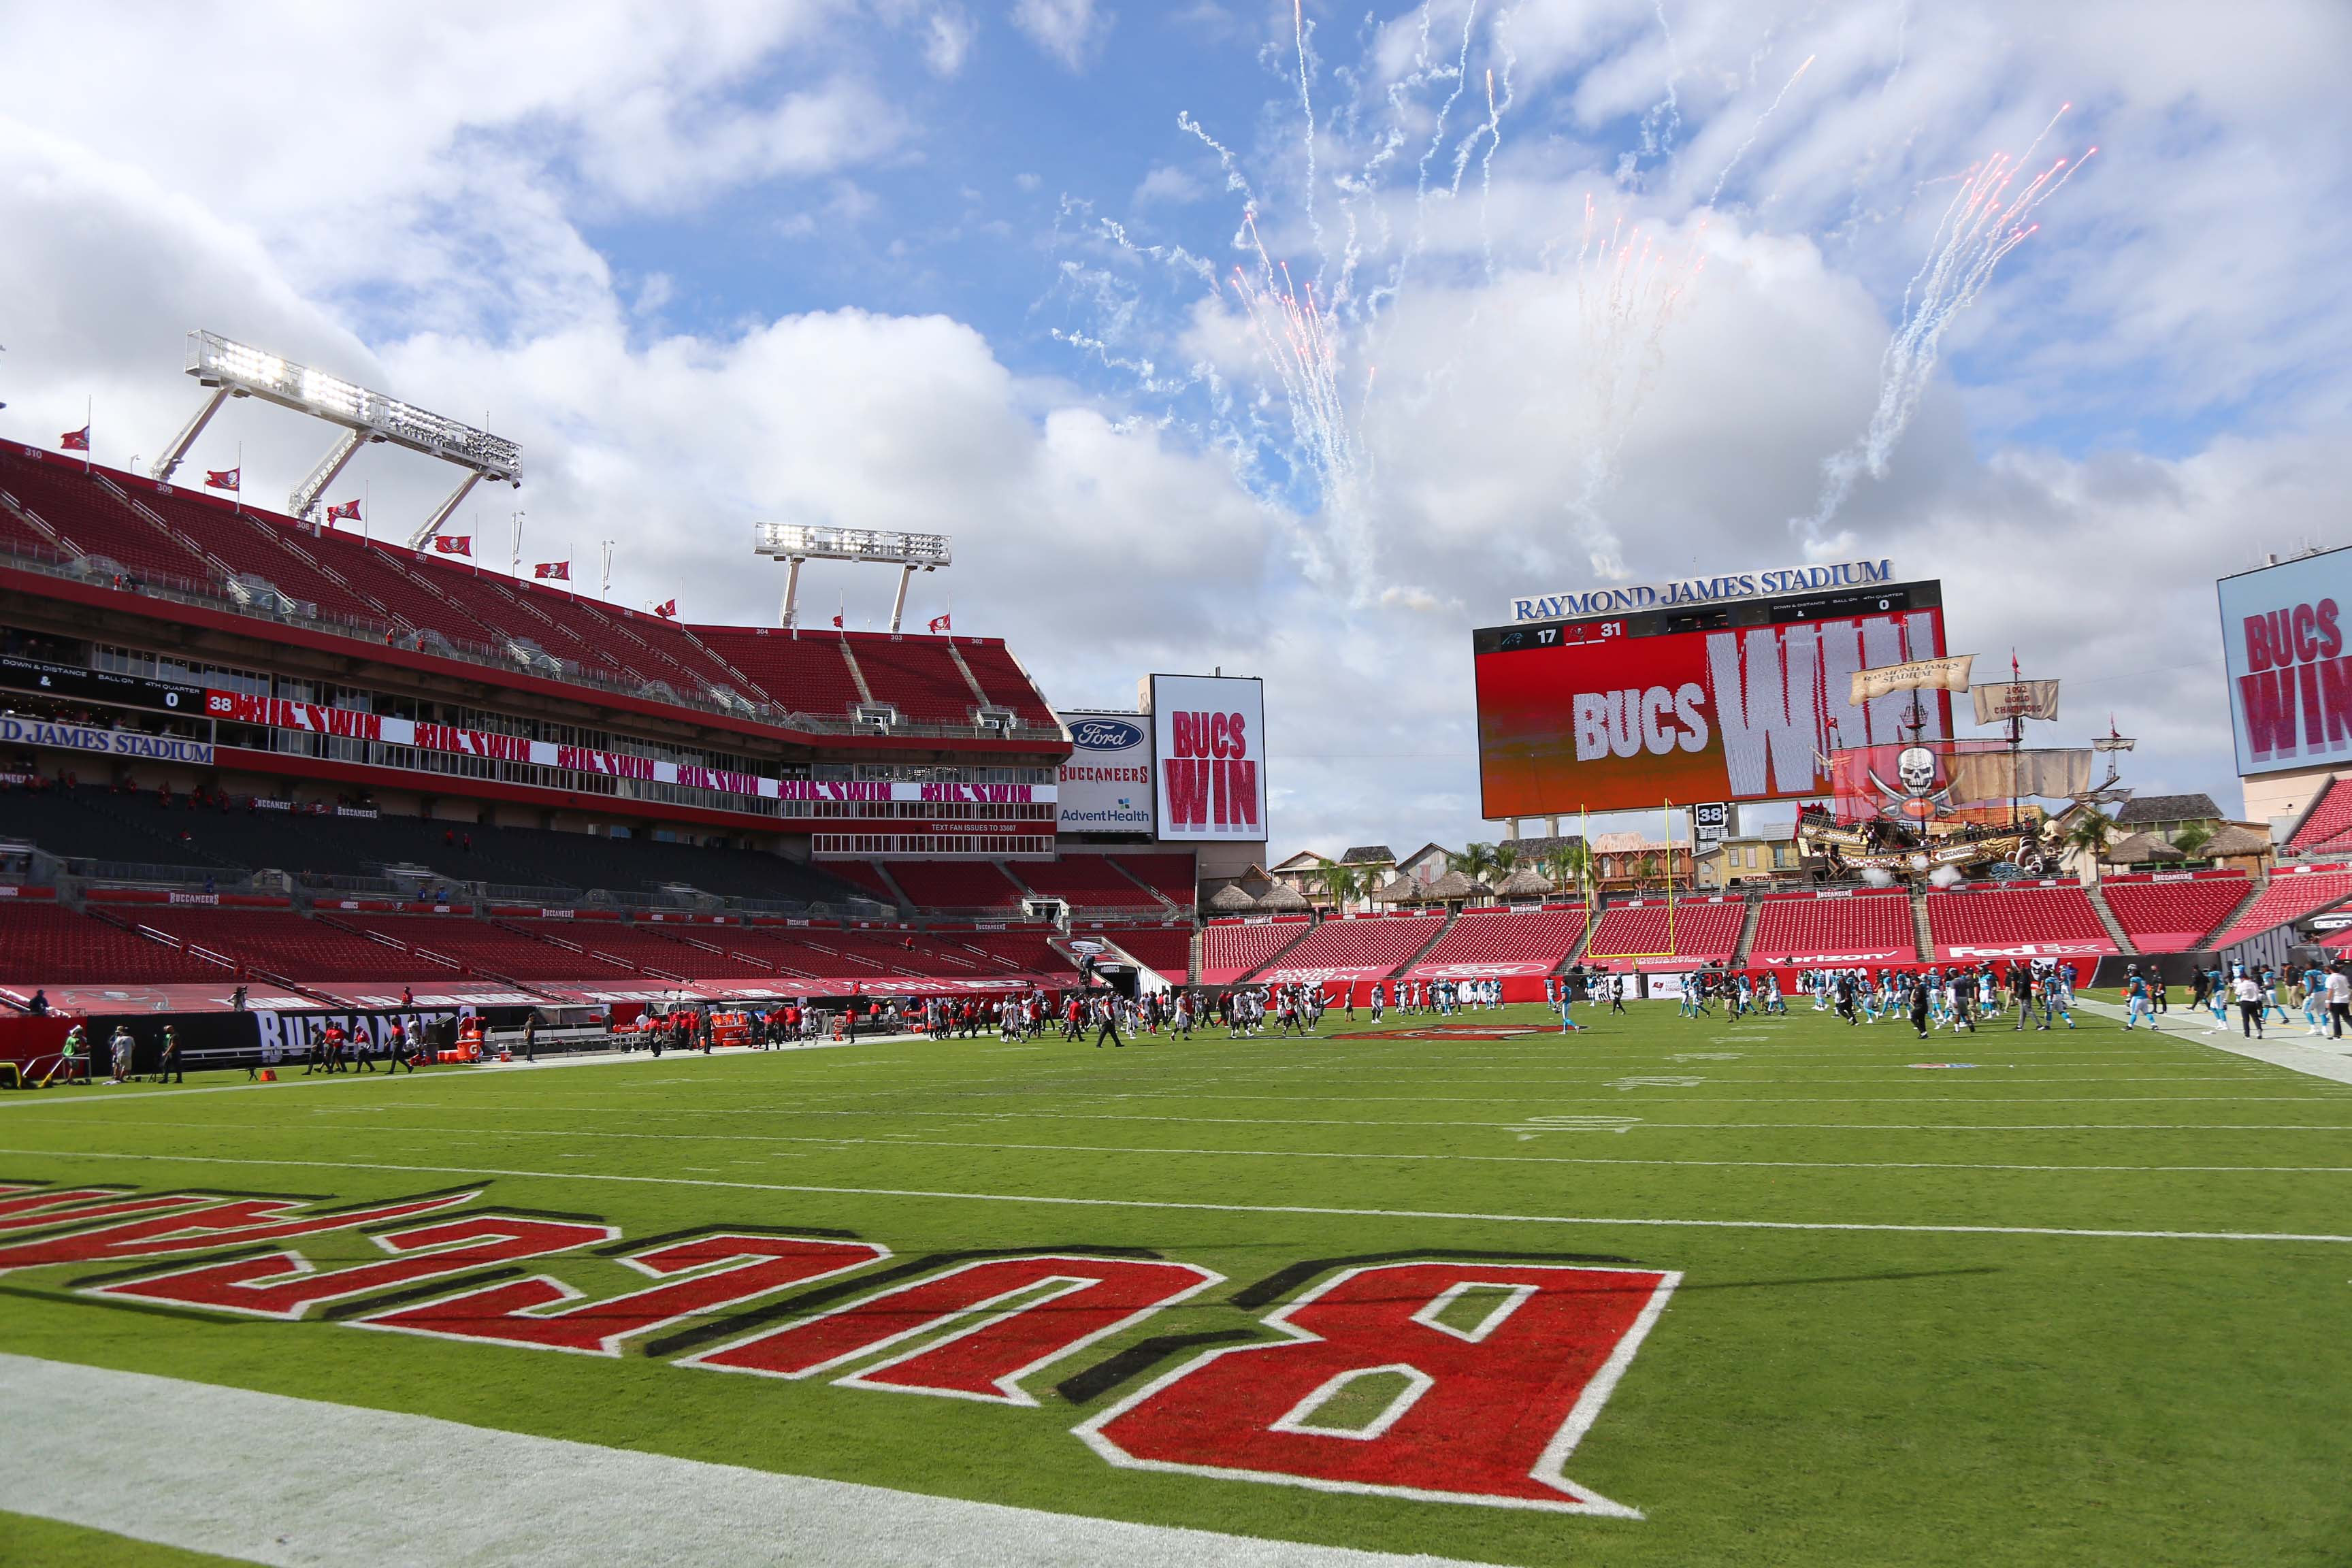 General view of the field after the Tampa Bay Buccaneers defeated the Carolina Panthers at Raymond James Stadium.